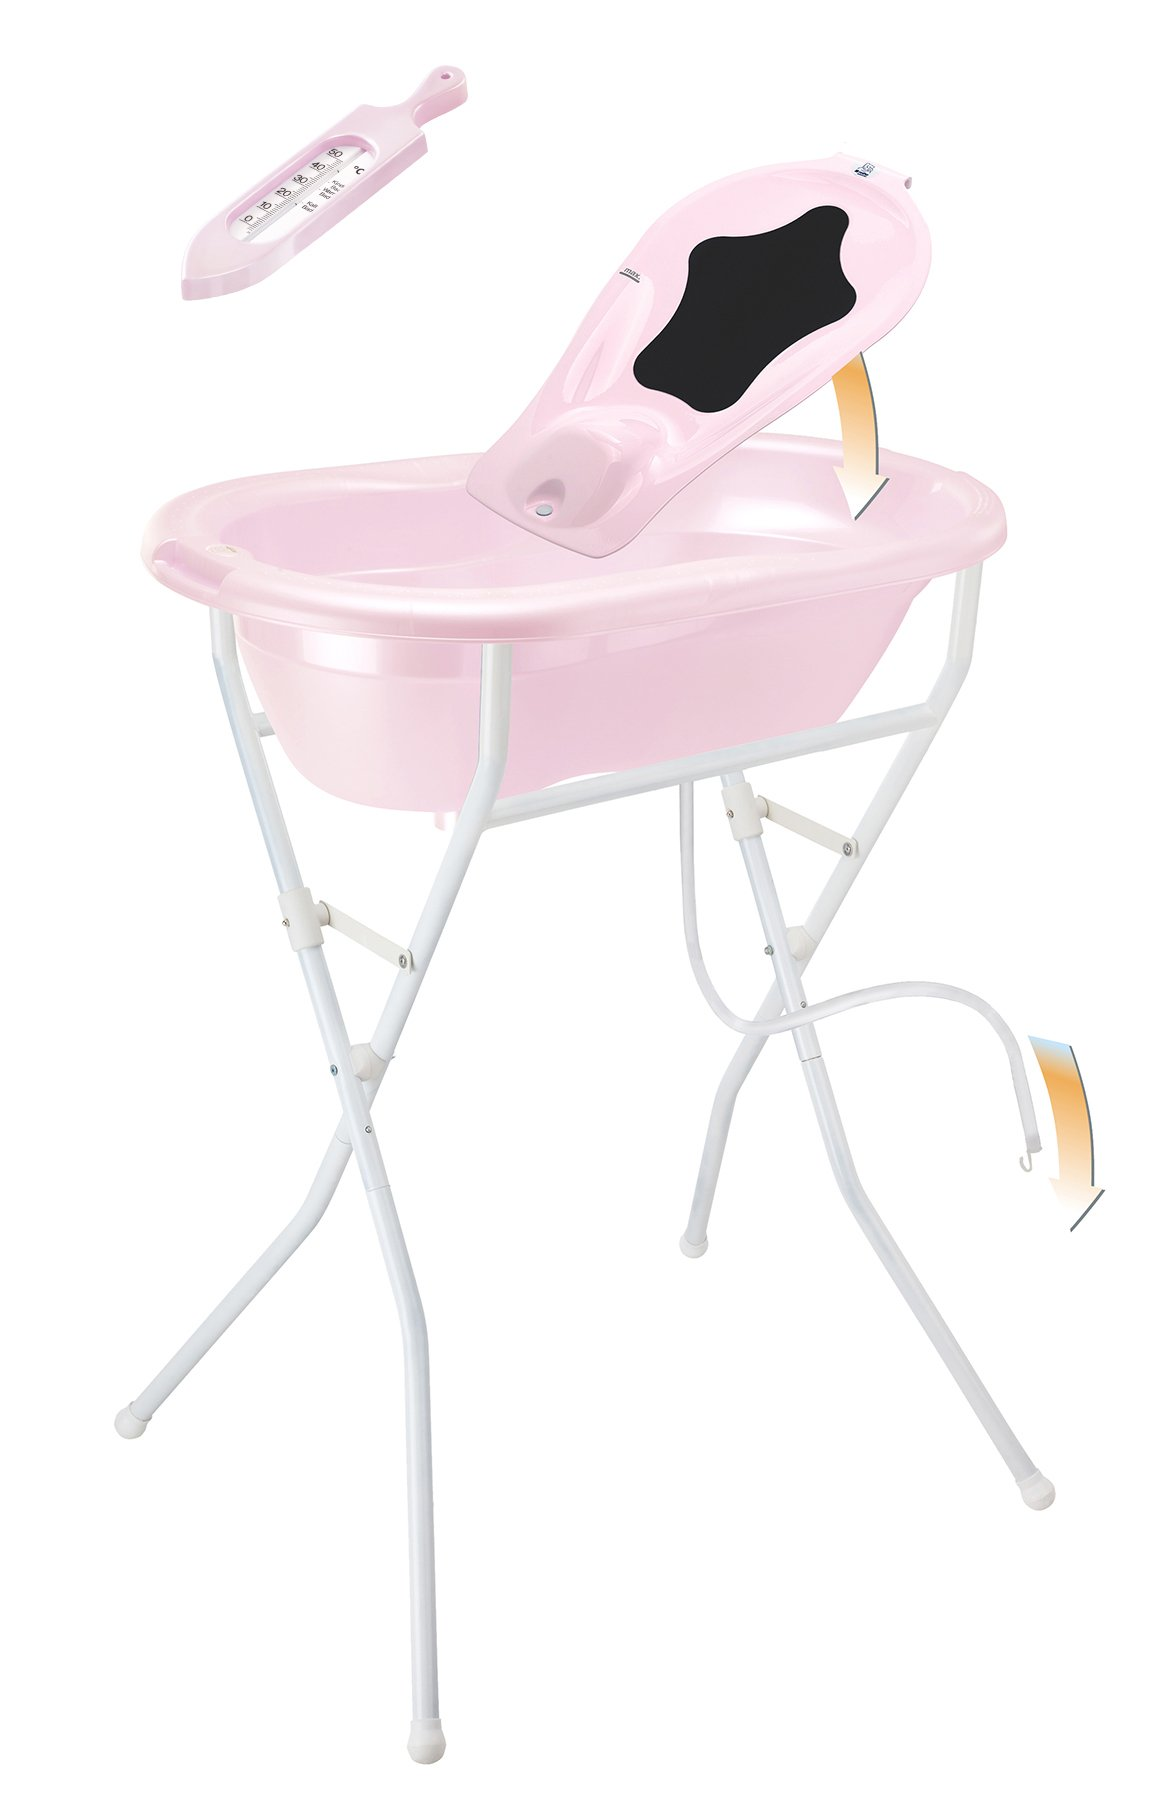 Rotho Babydesign Complete Set with Bath Tub and Foldable Stand, 0-12 Months